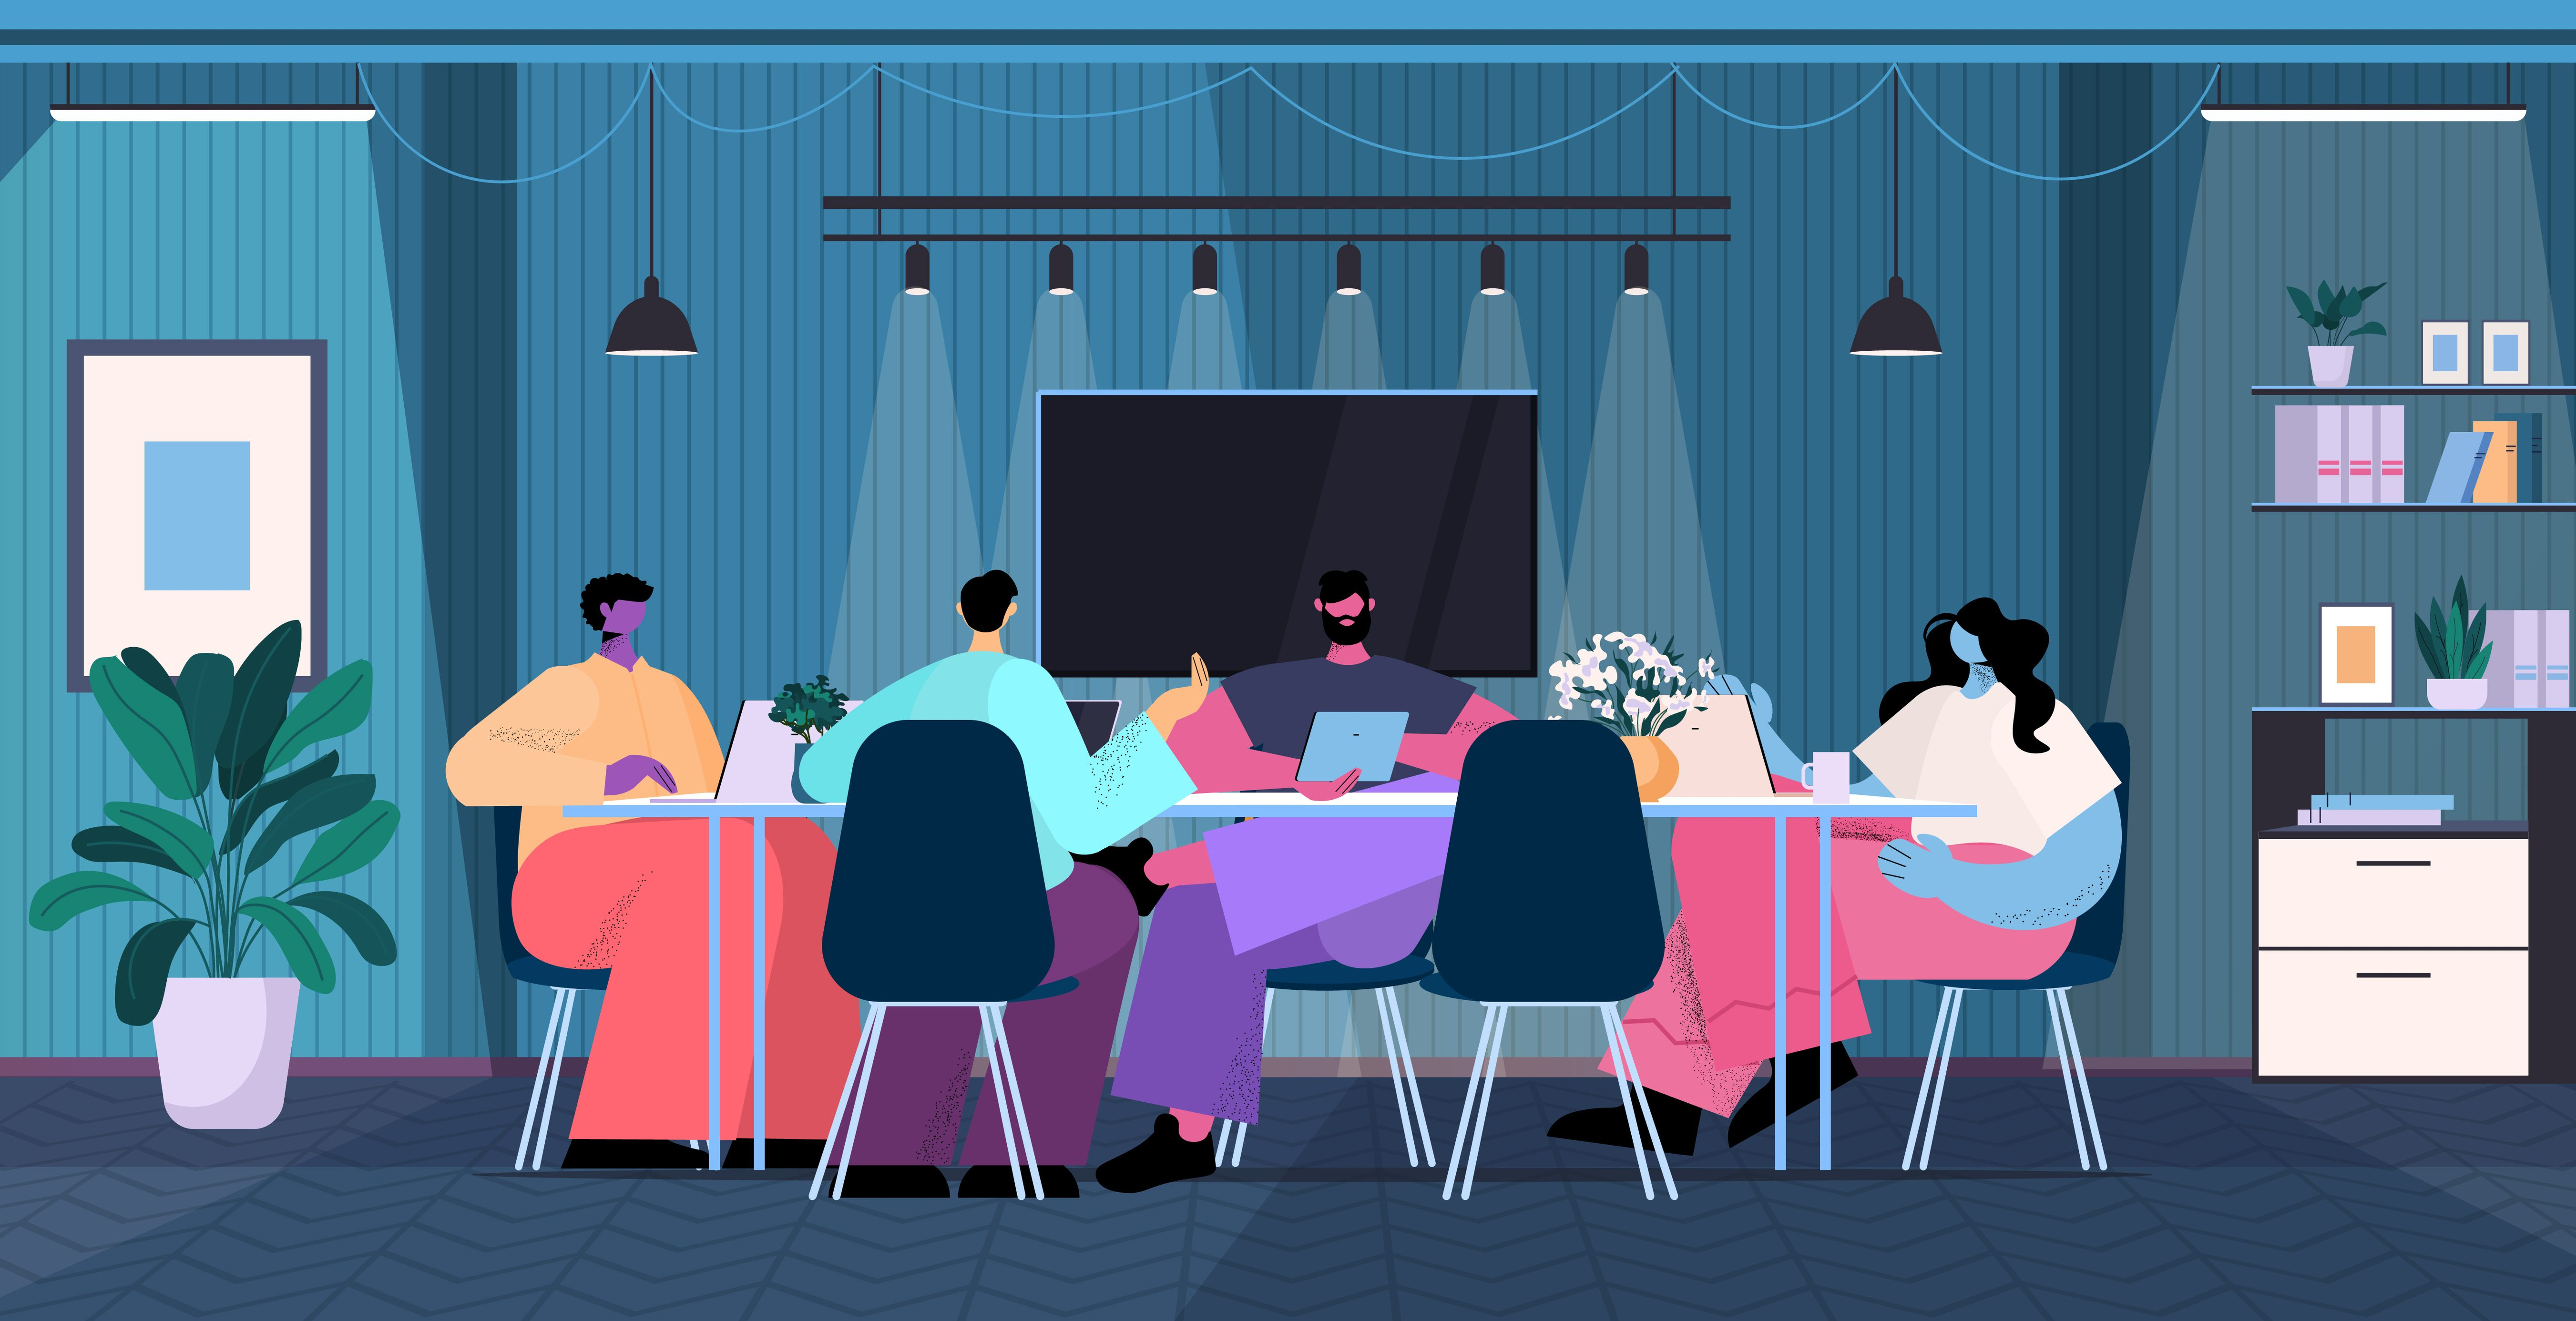 Team brainstorming at round table teachers and researchers working together in dark night office teamwork concept horizontal full length vector illustration